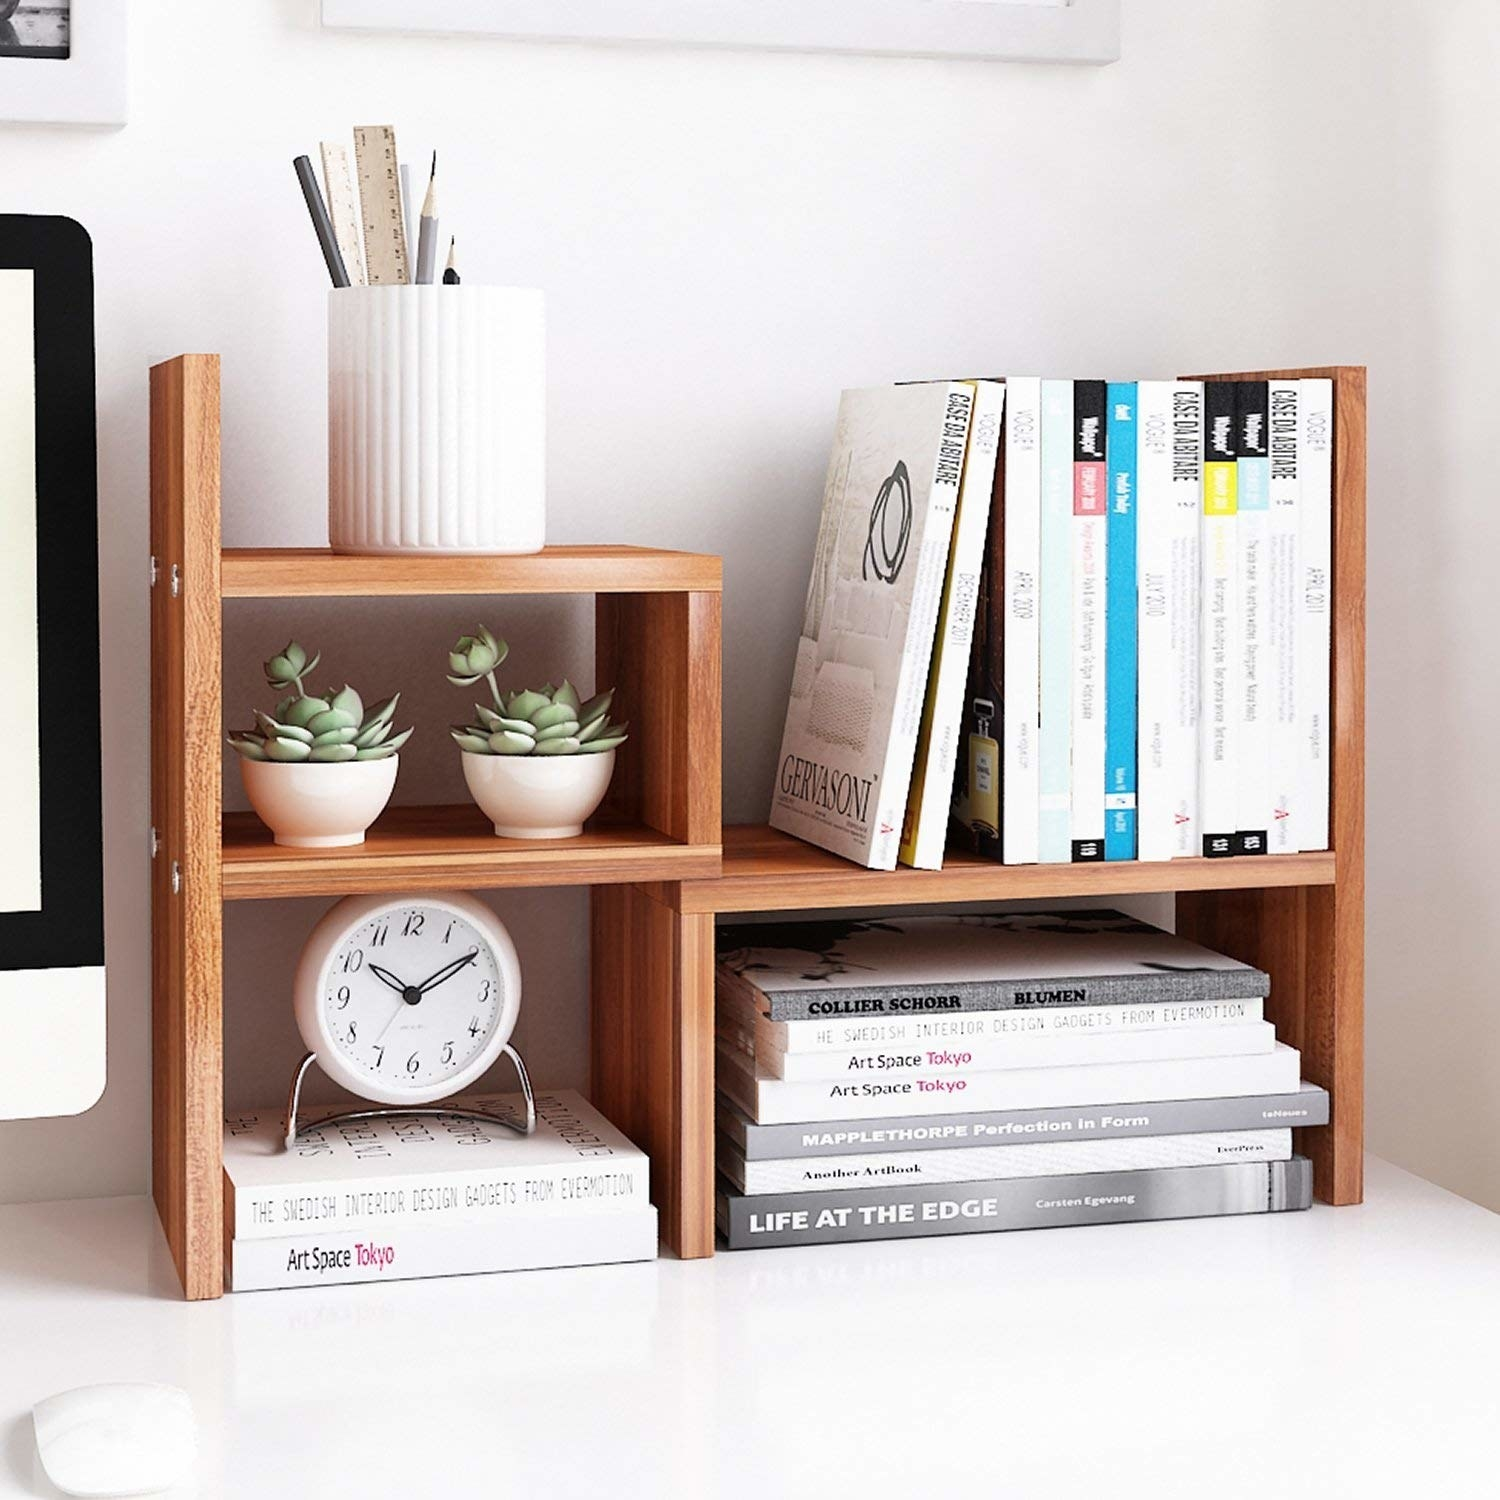 books and plants organized in the wooden desktop organizer